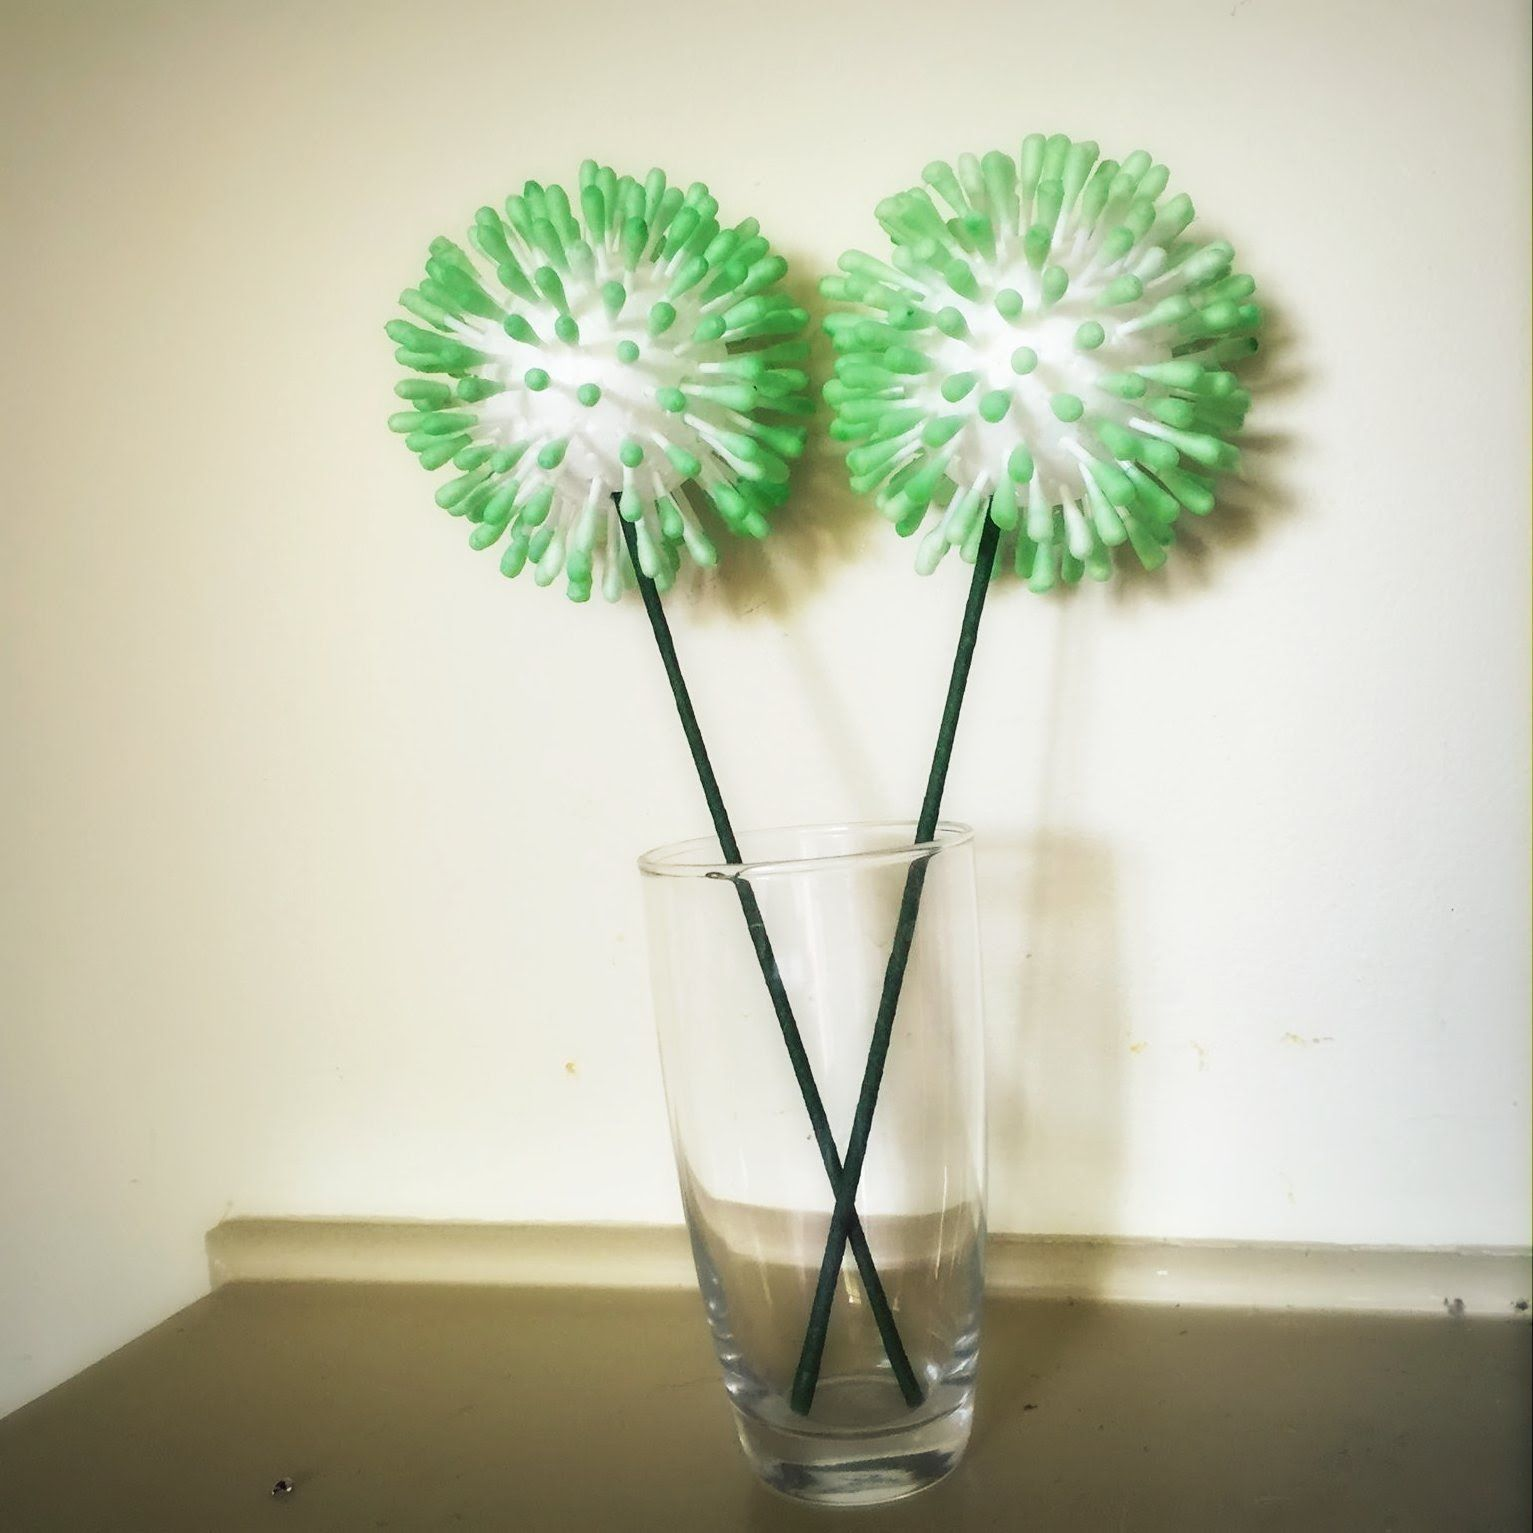 Mothers Day Gift Idea - DIY Home decor:Easy q-tip /cotton bud